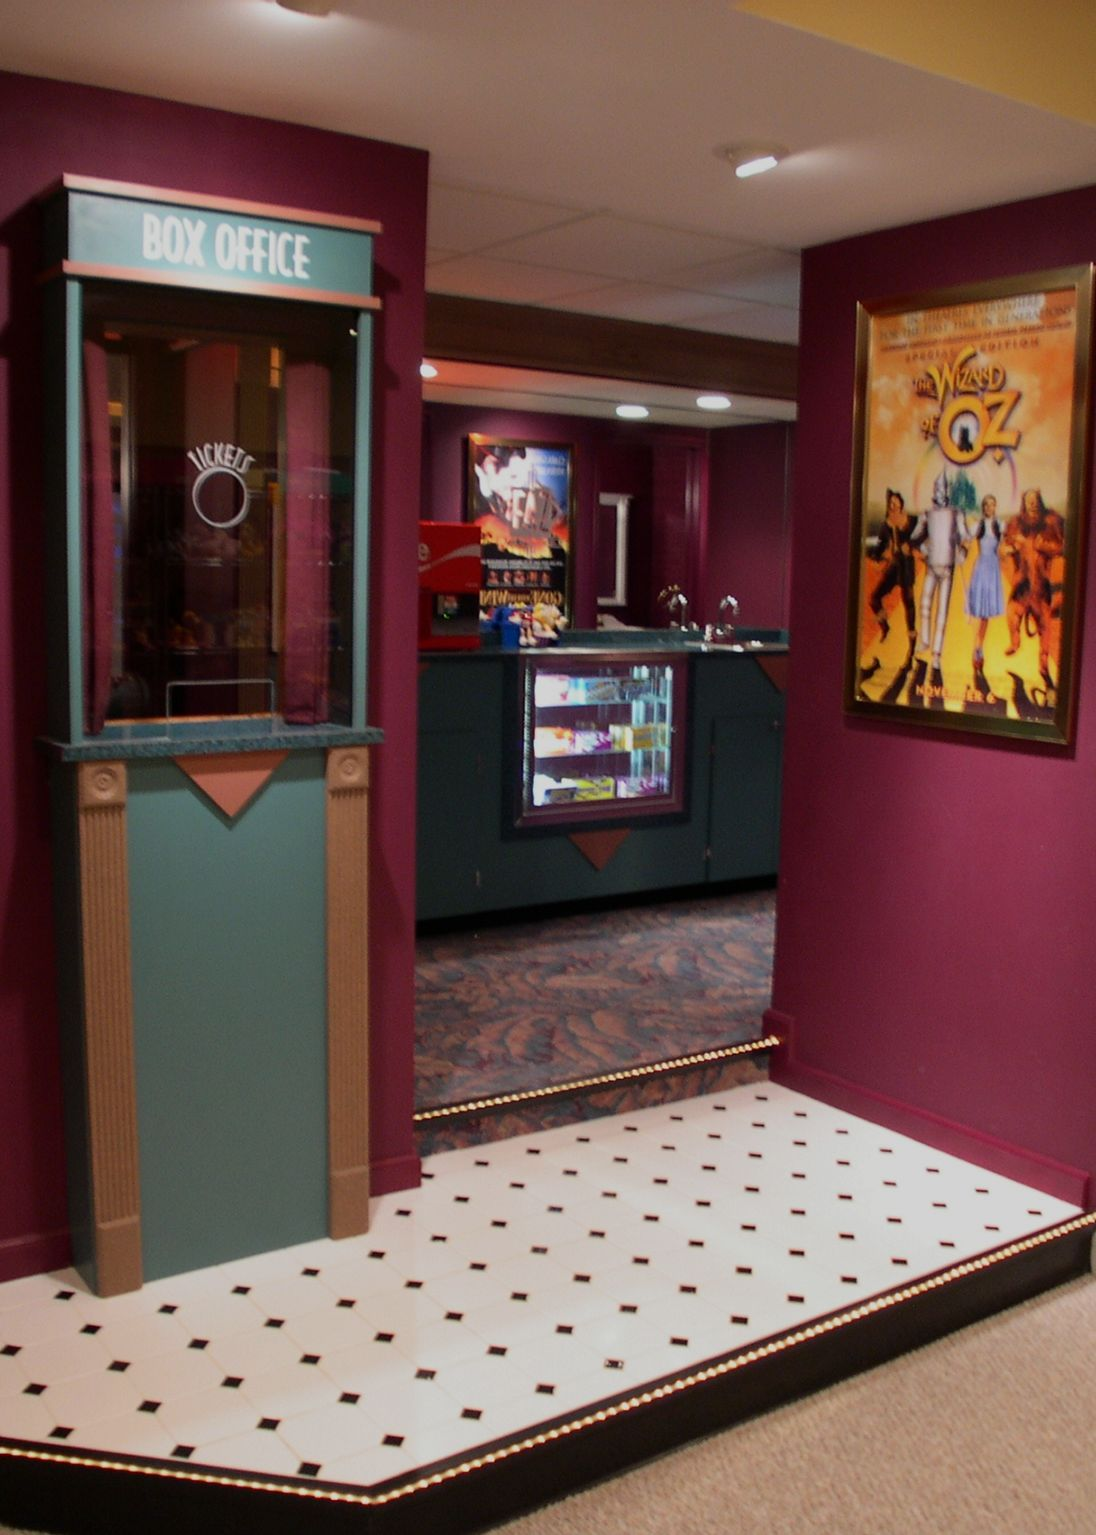 Gewaltig Heimkino Einrichten Beste Wahl Home Theater Ticket Booth & Candy Concession